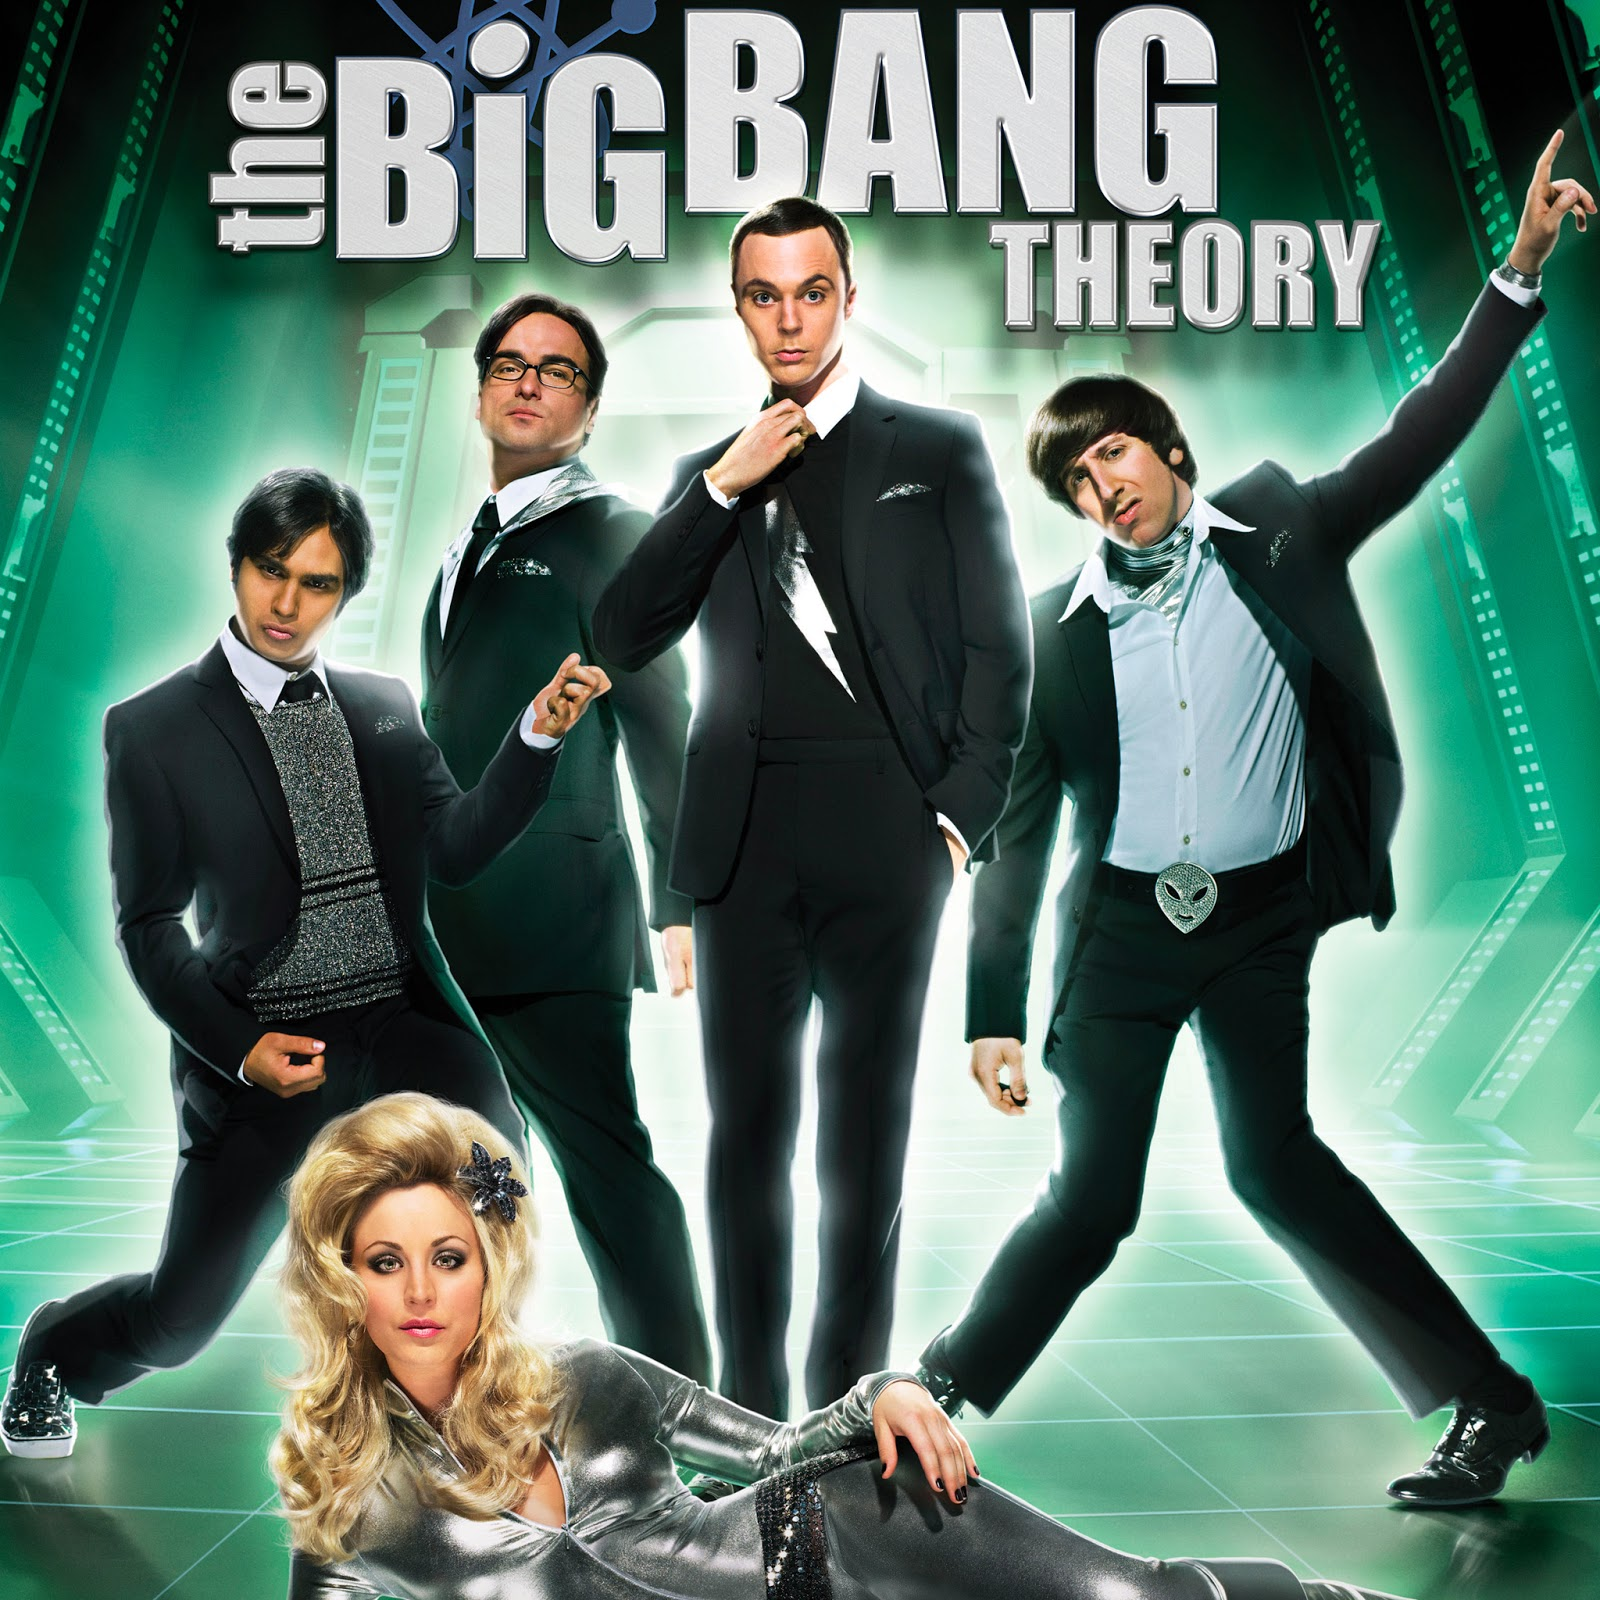 http://1.bp.blogspot.com/-VhTUCryJfyc/UOt59Ofe-kI/AAAAAAAAAT0/qzqBqEBp6Ps/s1600/The_Big_Bang_Theory_3Wallpapers_iPad.jpg